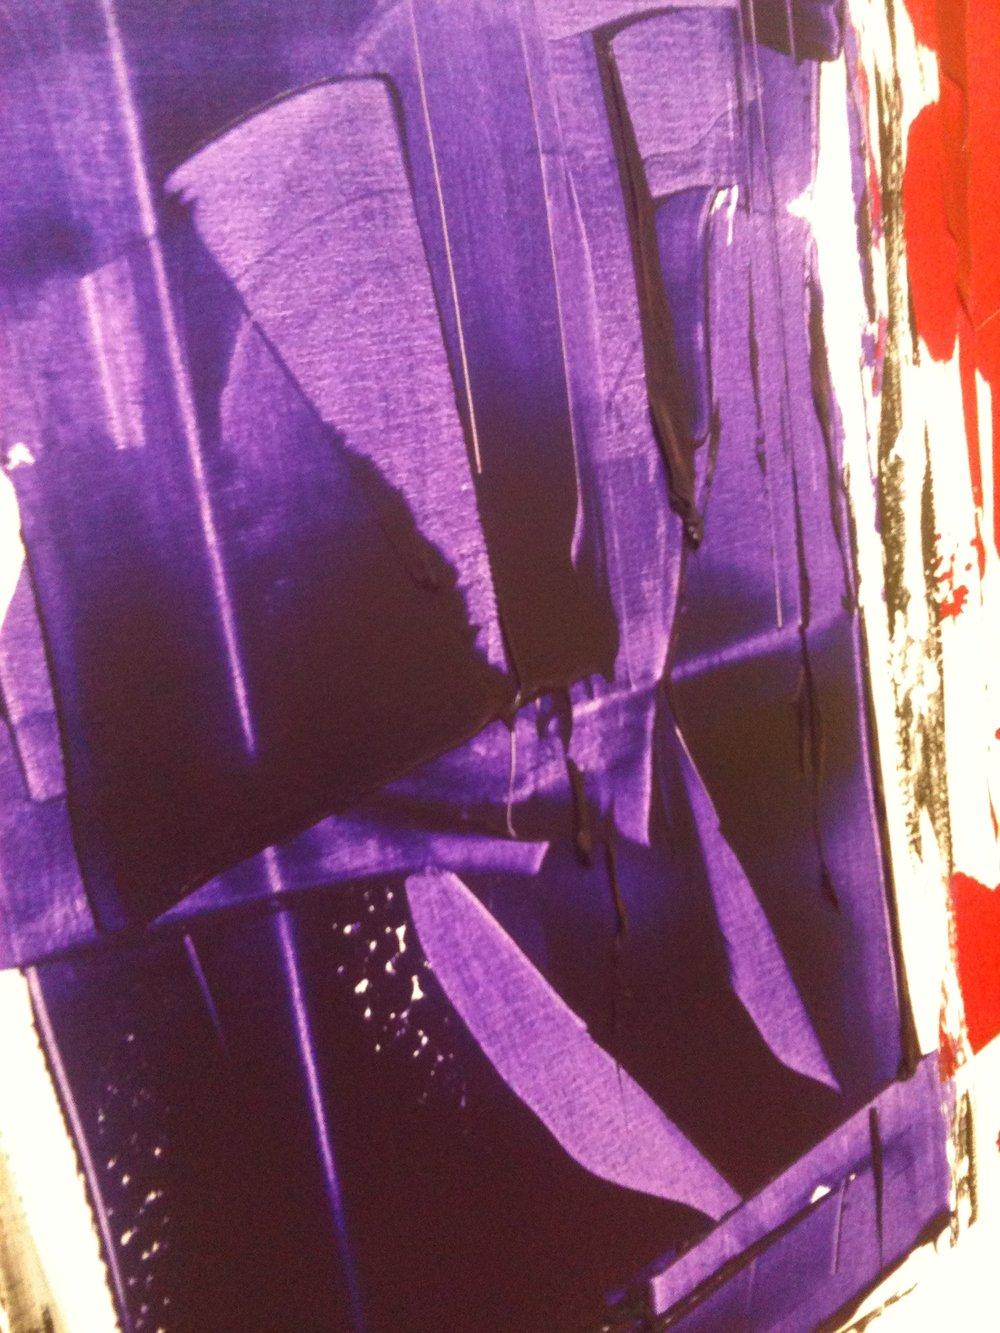 impetus series - detail / acrylic on canvas / 60 in. x 60 in.